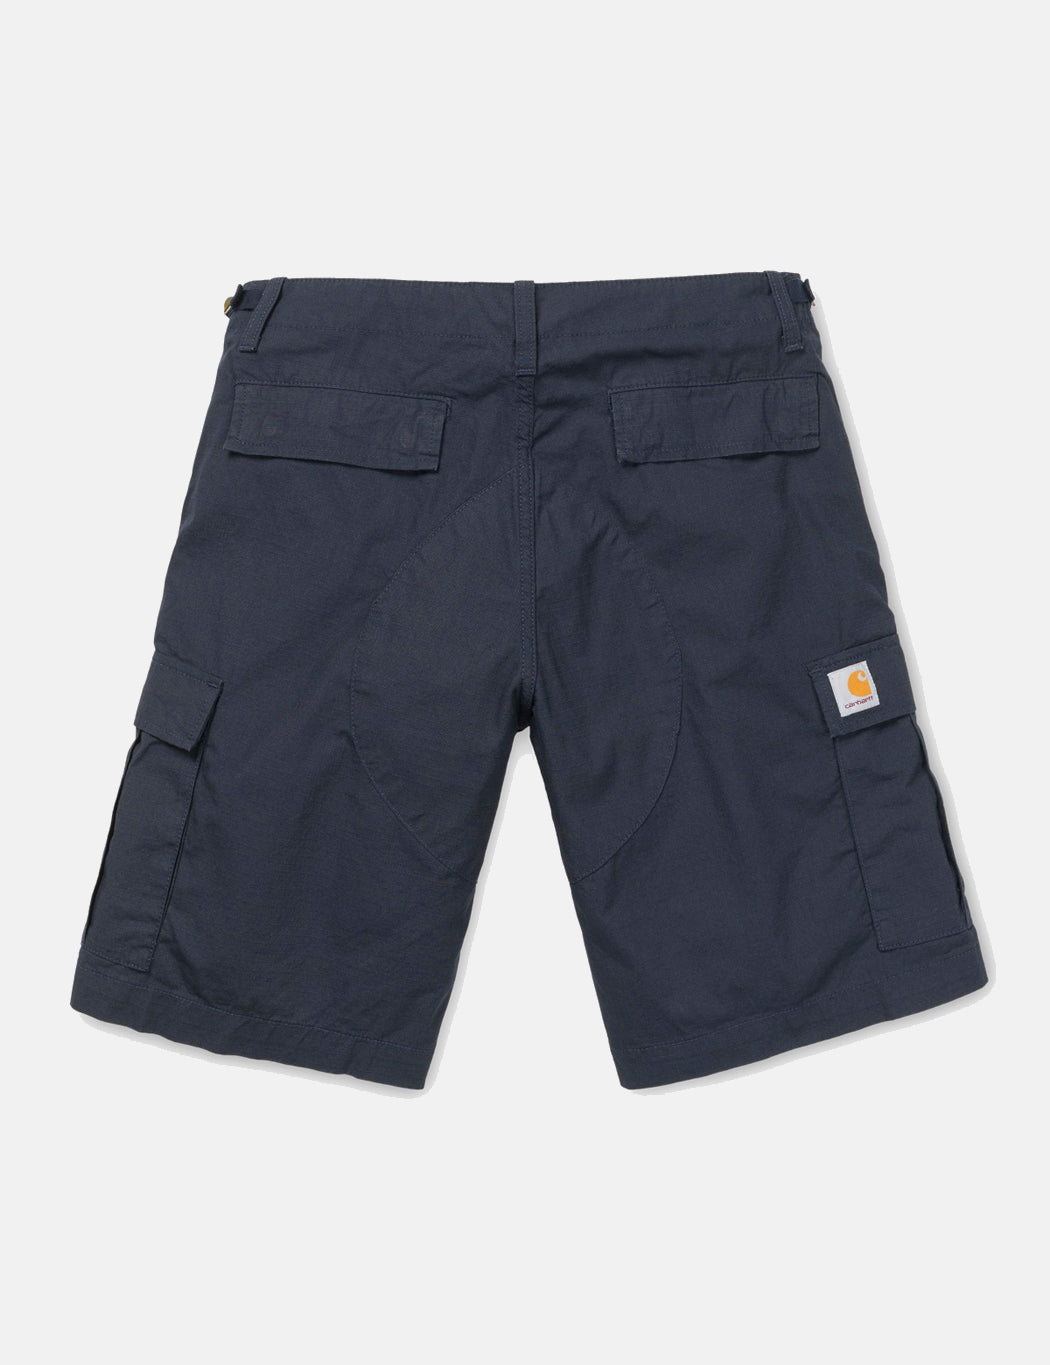 Carhartt Aviation Cargo Shorts - Navy Blue